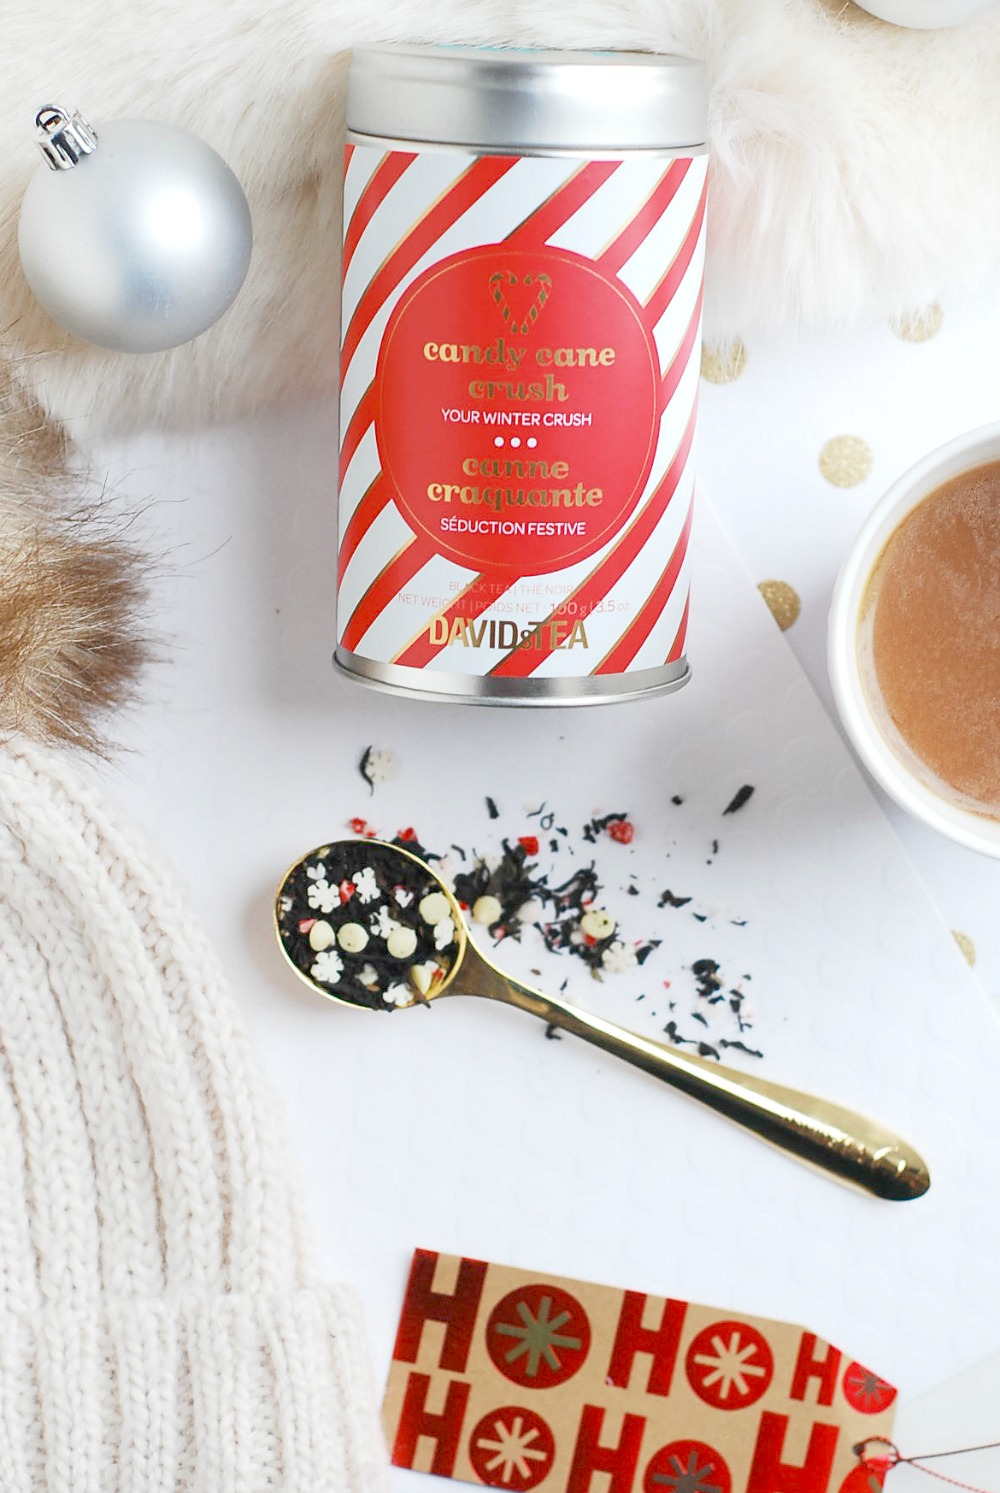 Candy Cane Crush review David's Tea